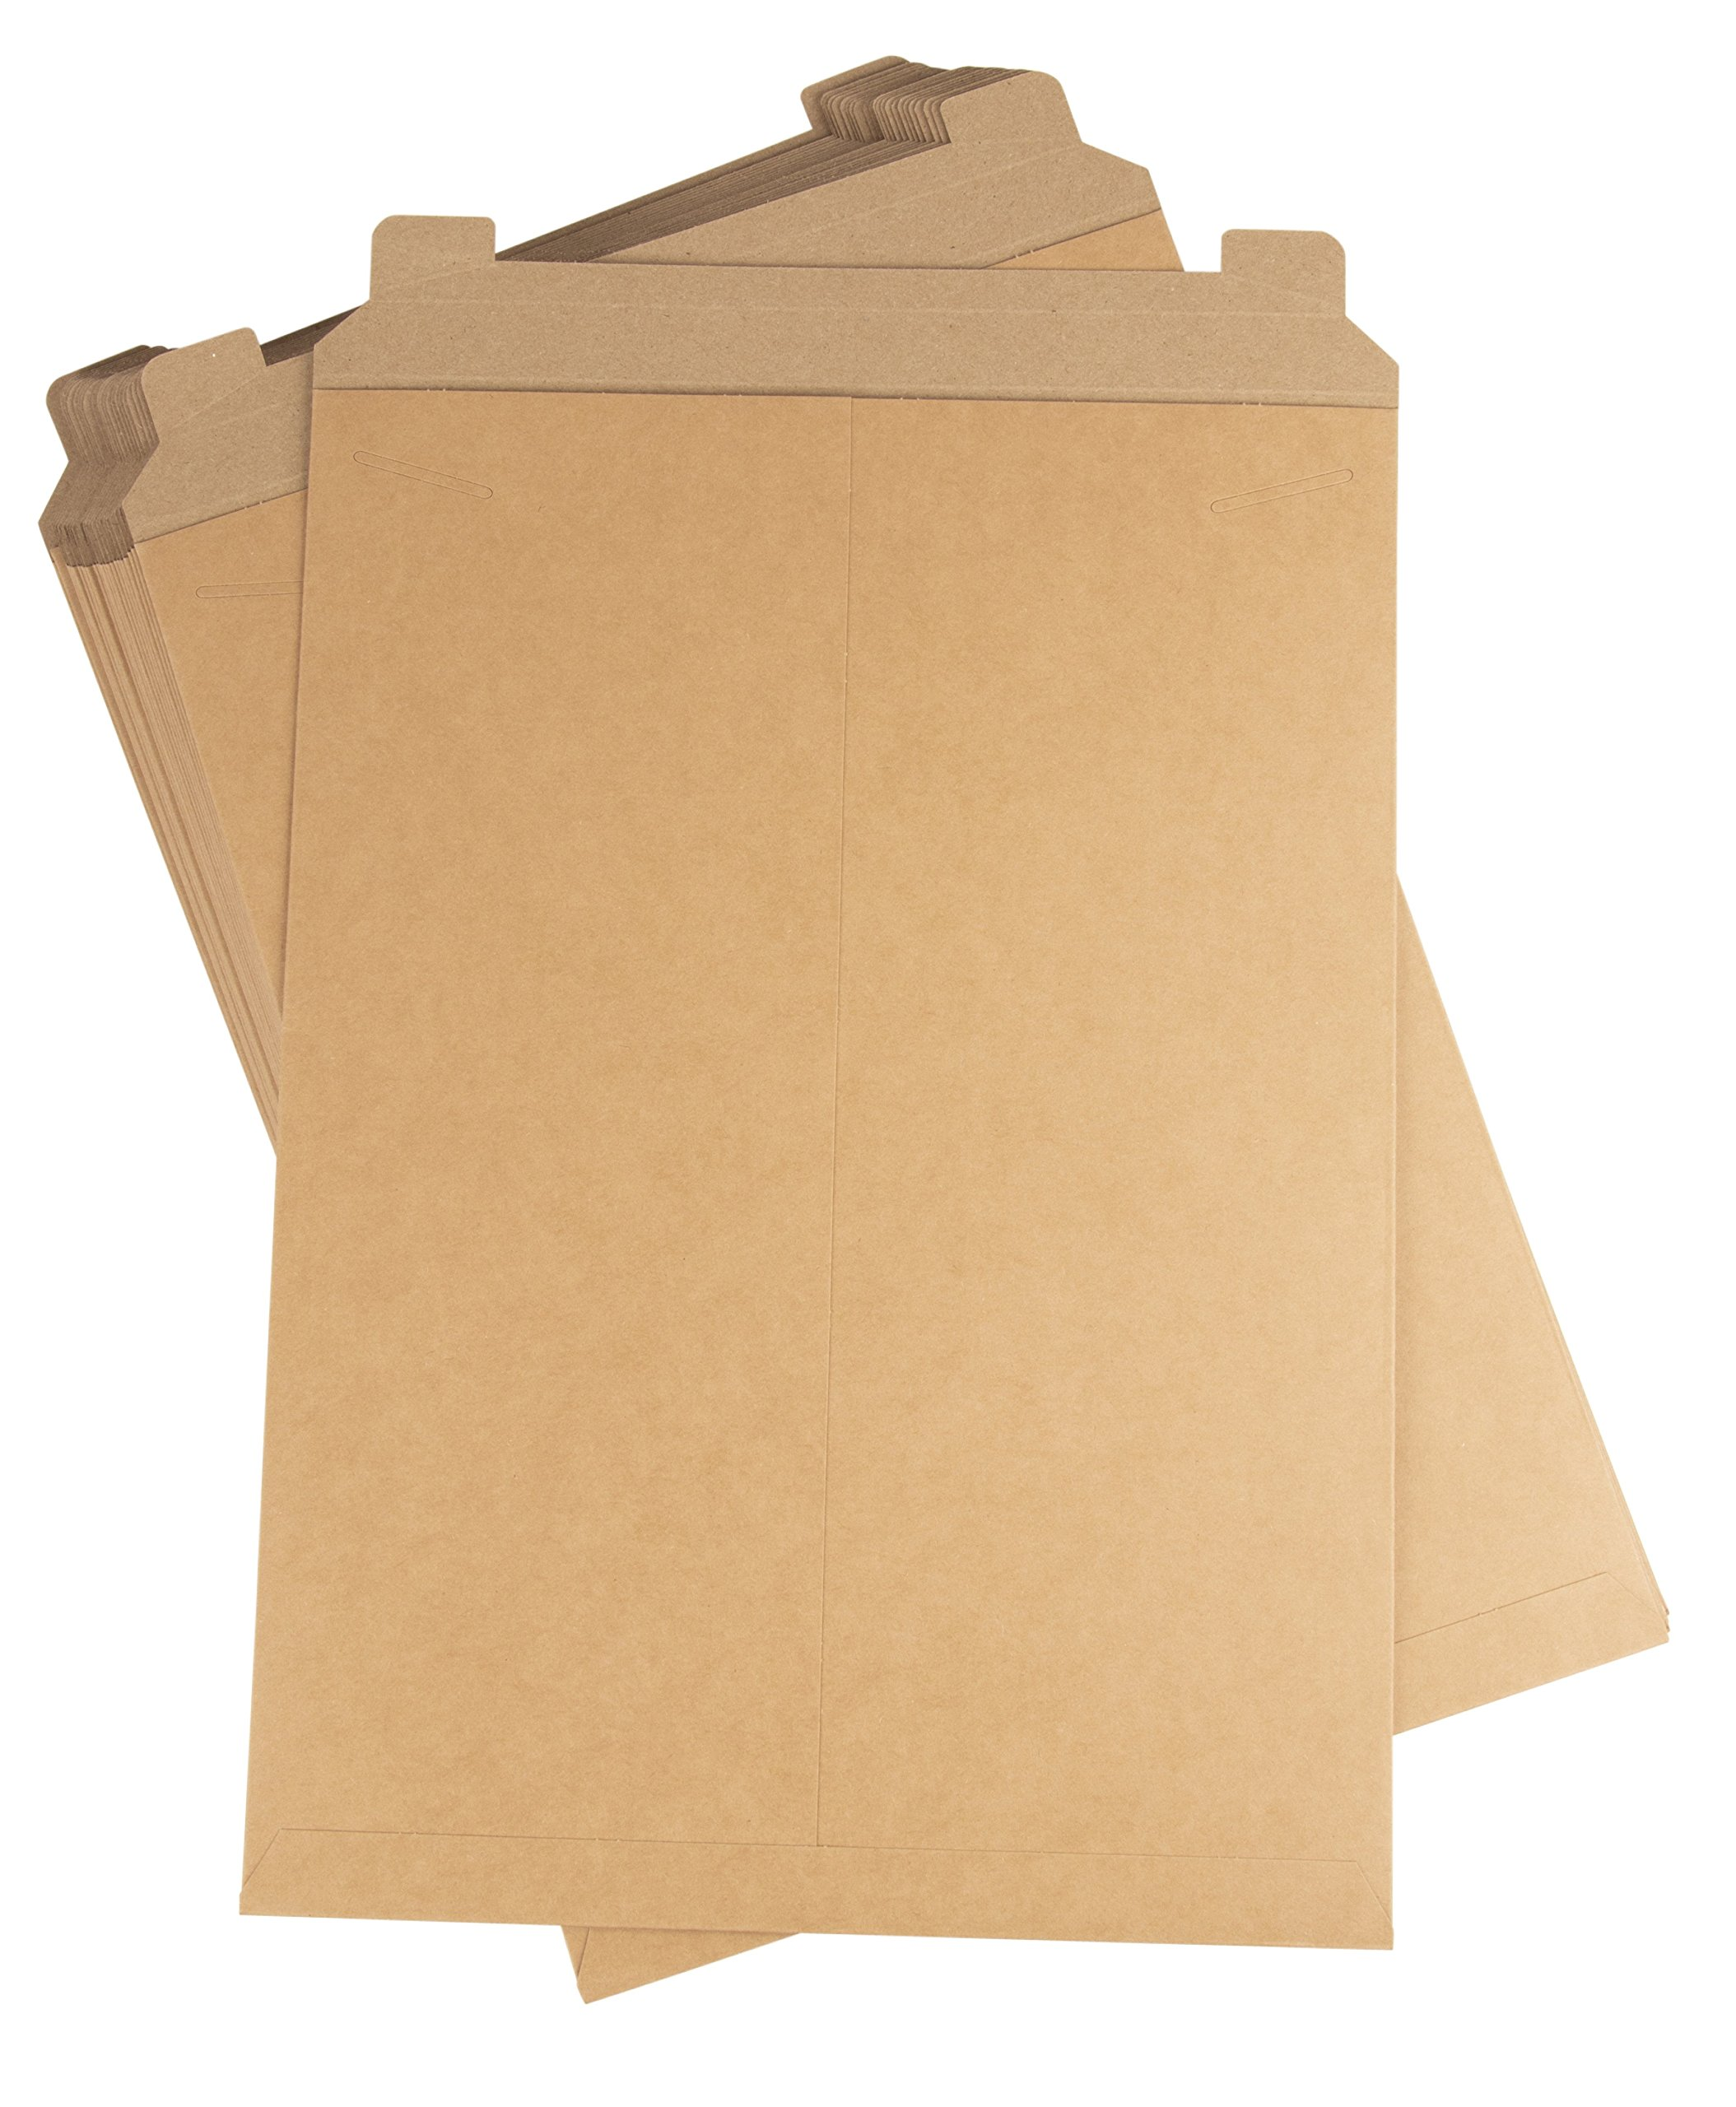 Rigid Mailers - 25-Pack Stay Flat Photo Document Mailers, Flap Closure Paperboard Envelope Mailers for Photos, Pictures, Documents, No Bend, Kraft Brown, 13 x 18 inches by Juvale